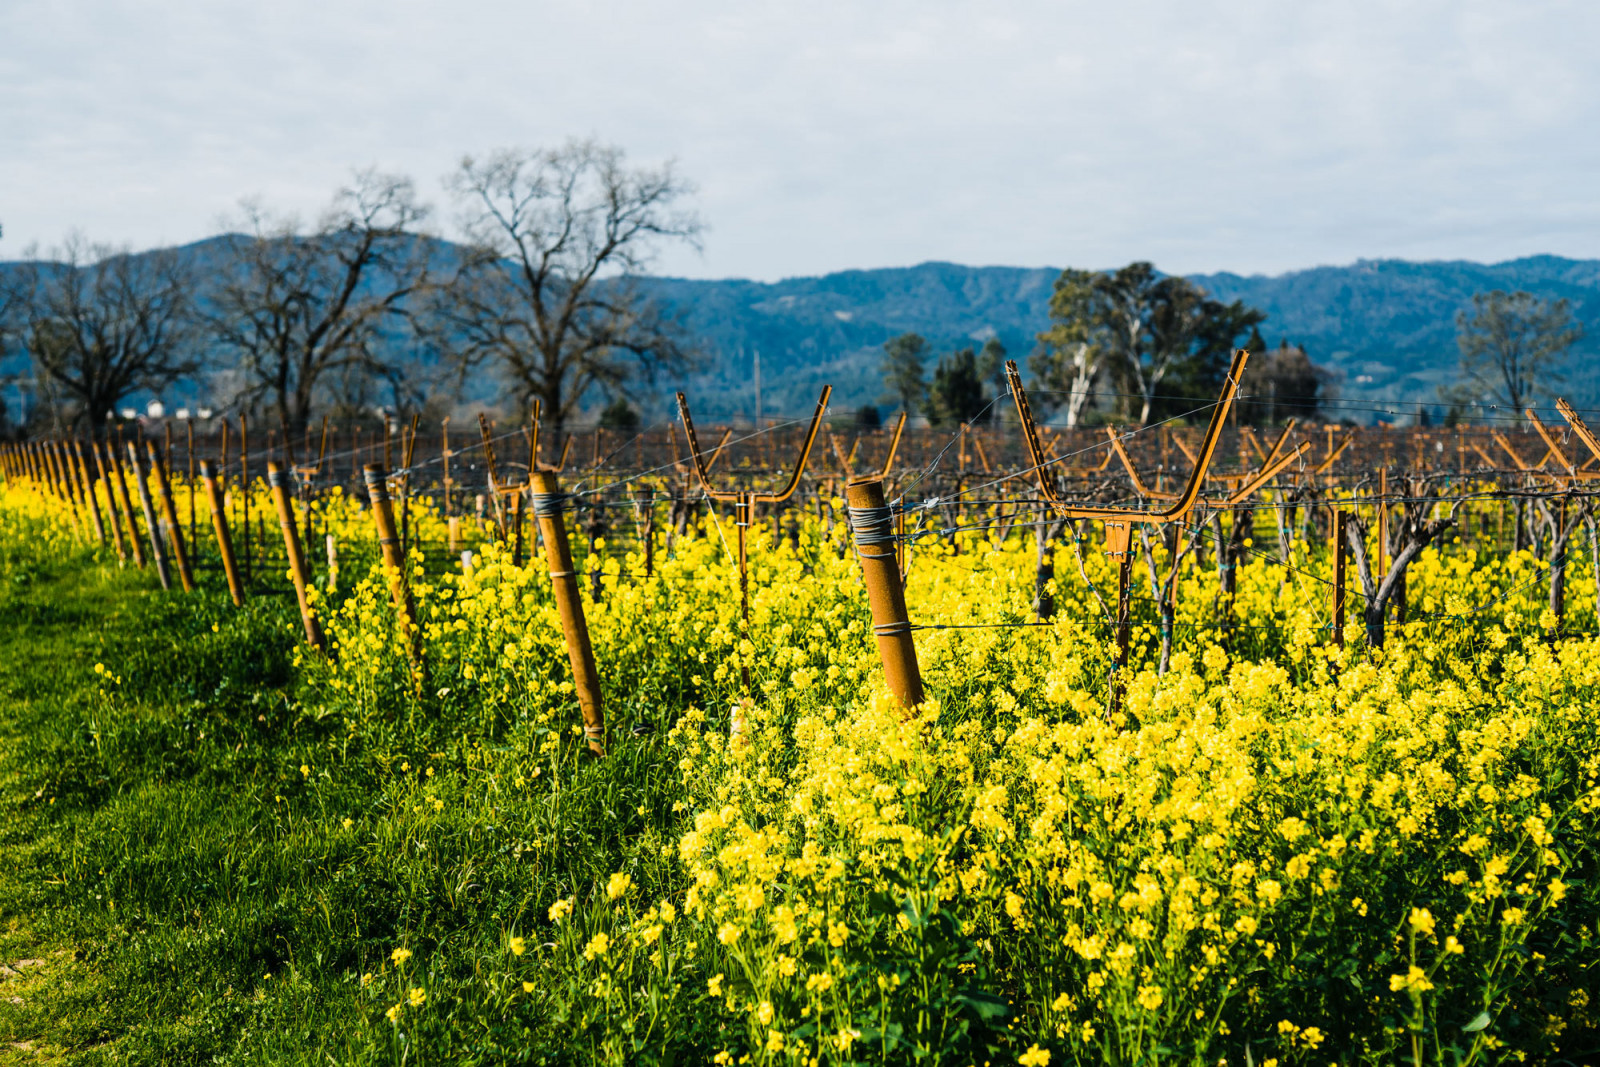 Mustard growing in the Trailside Vineyard